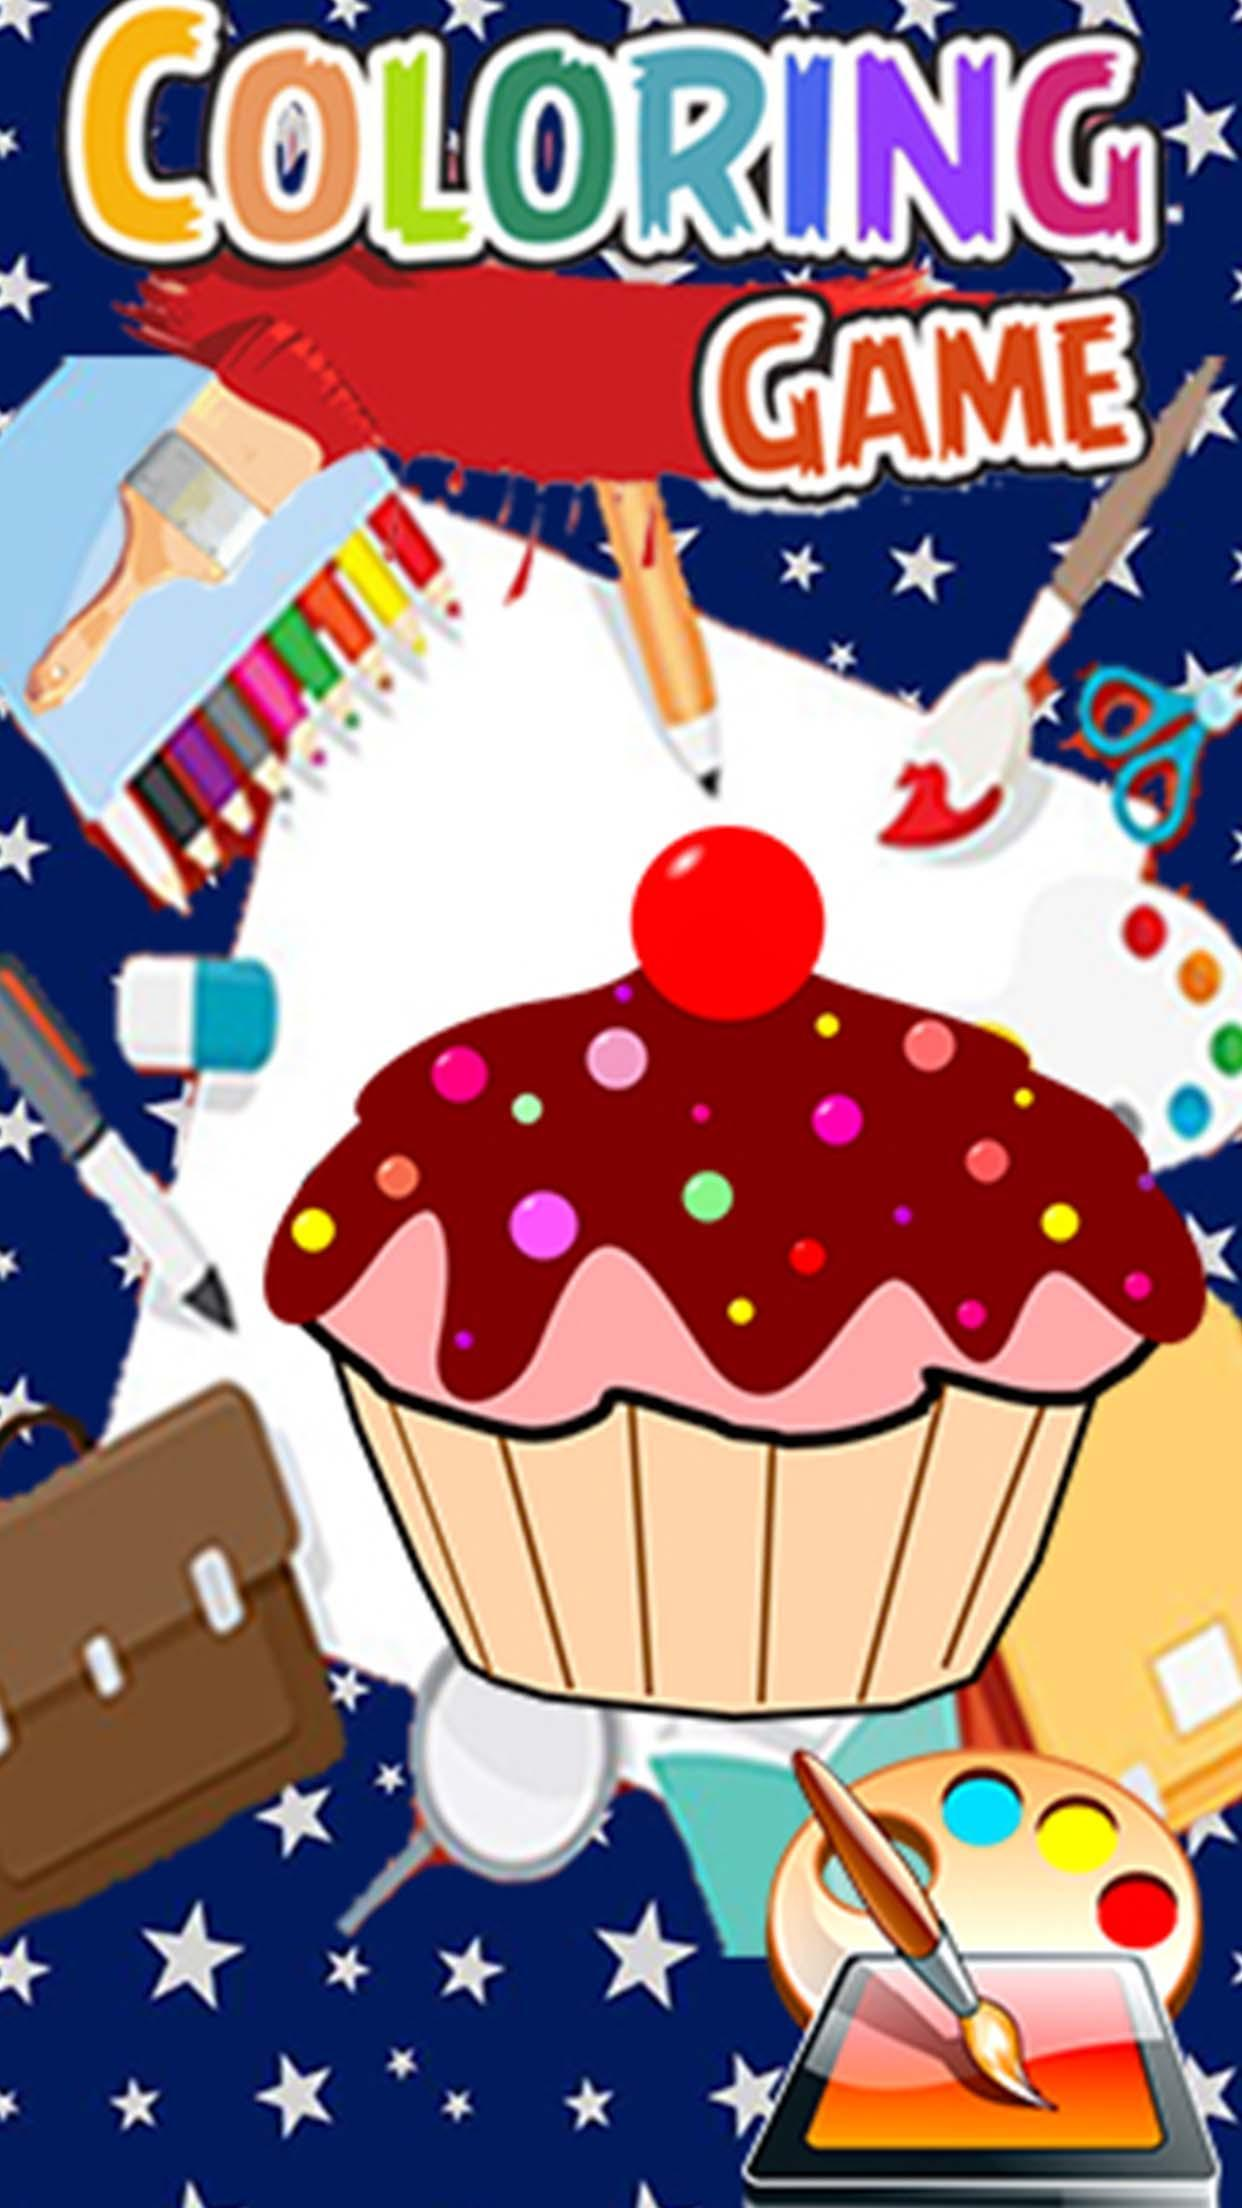 Game App Cake Kids Coloring for Android - APK Download